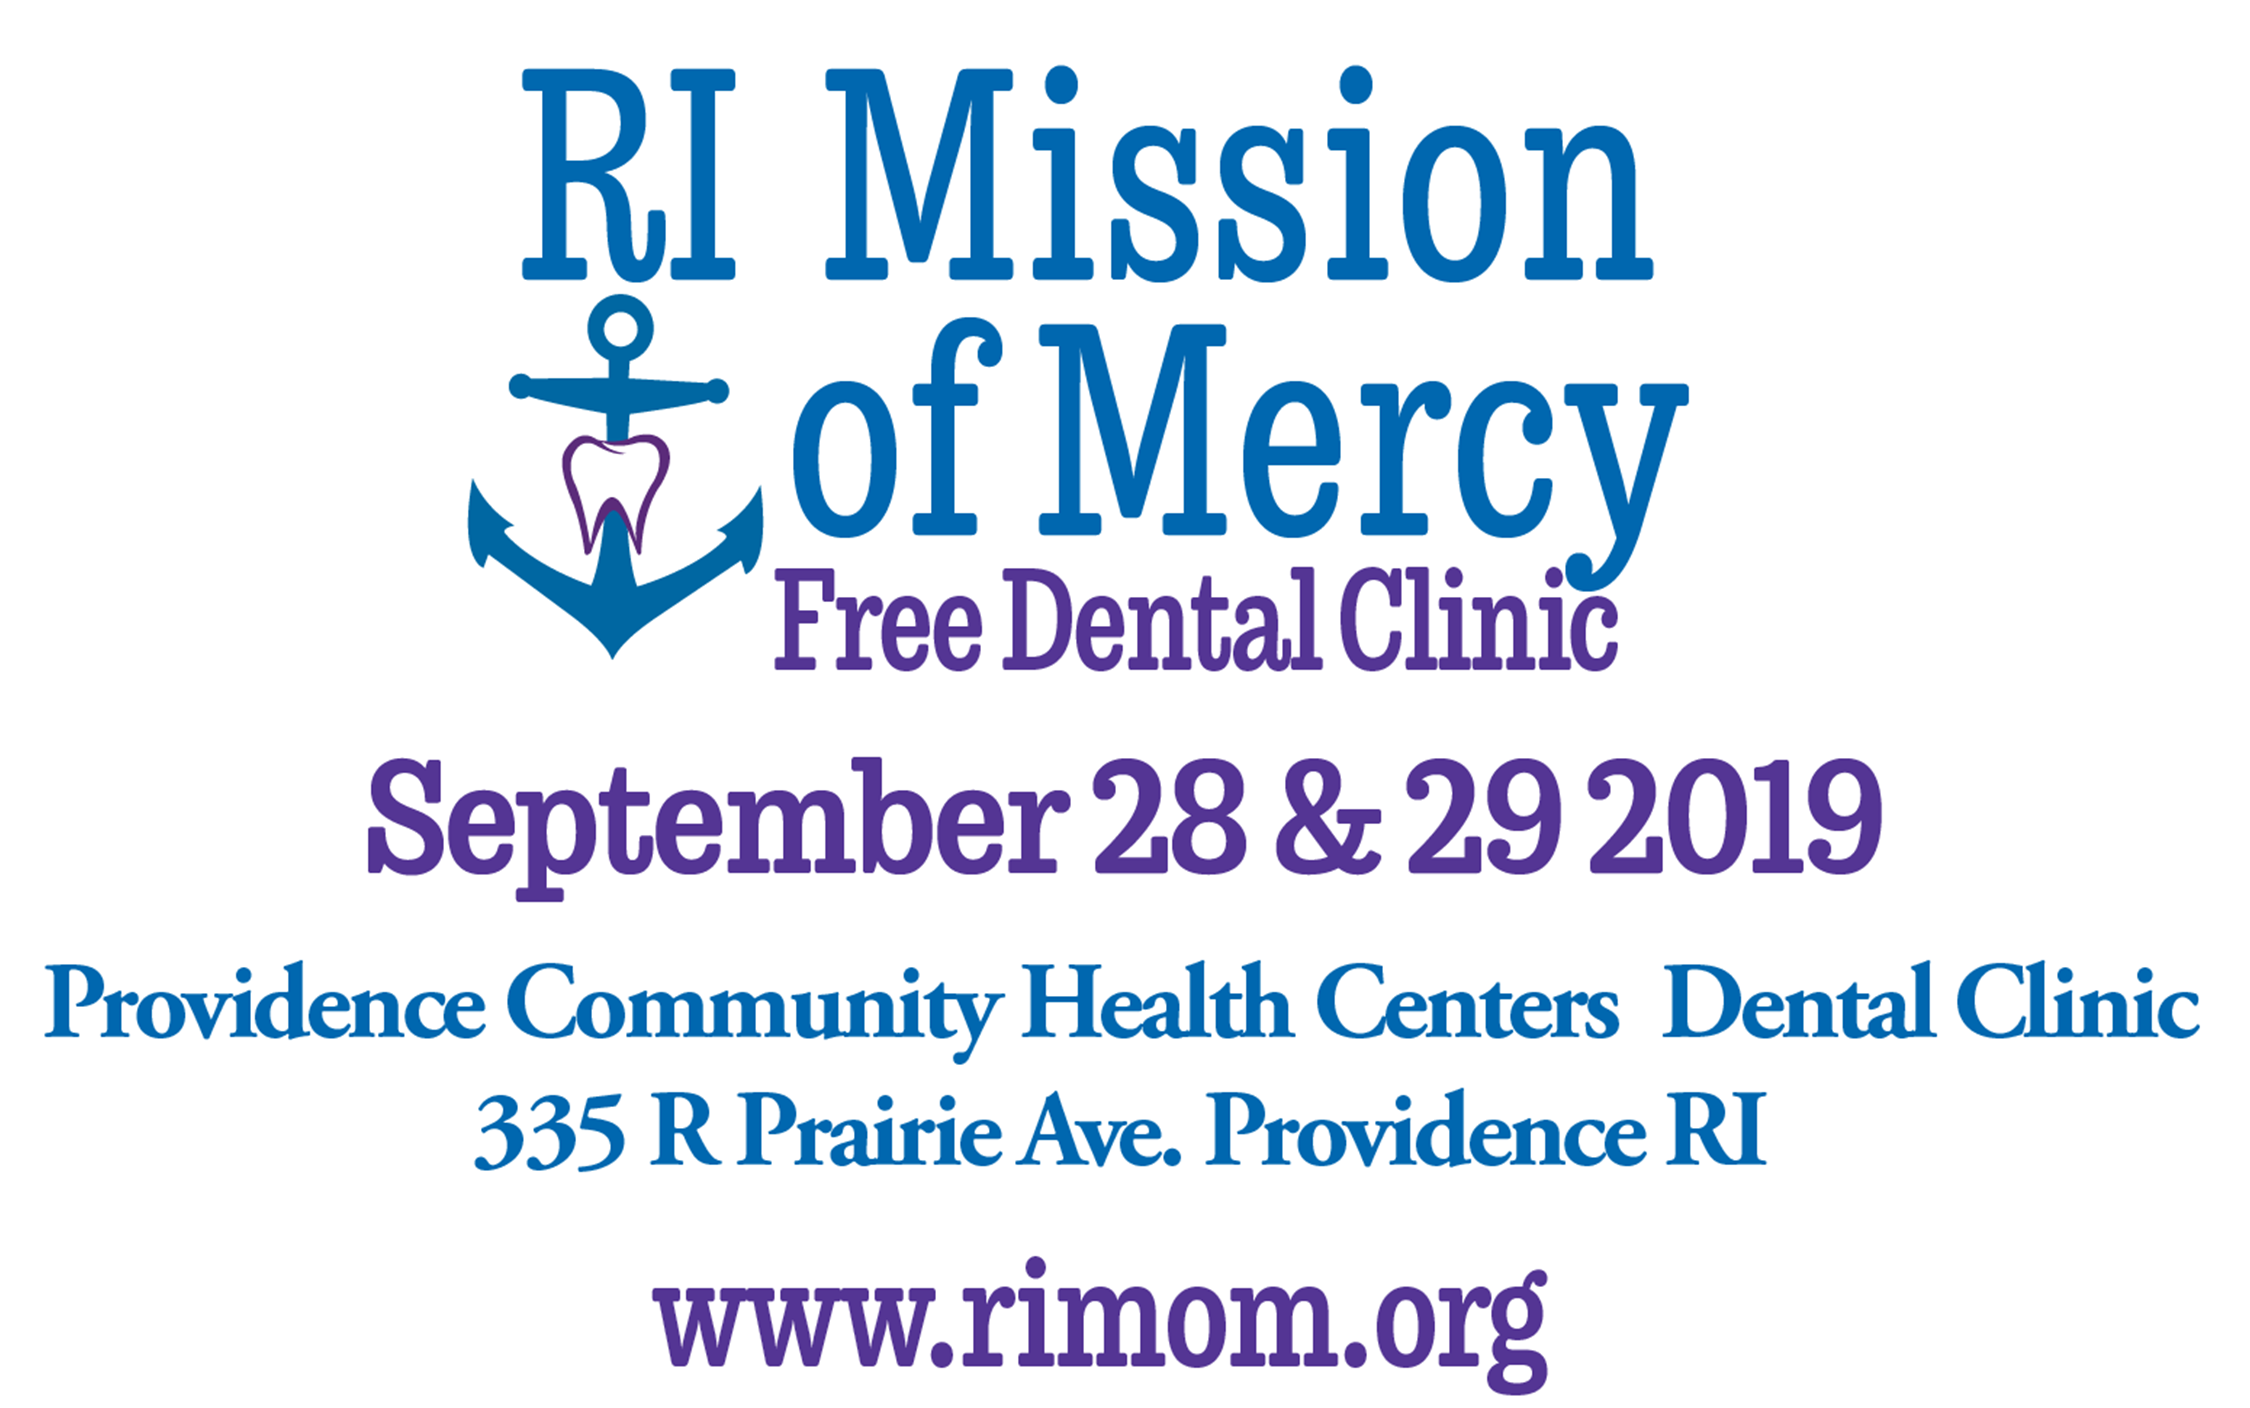 RI Mission of Mercy